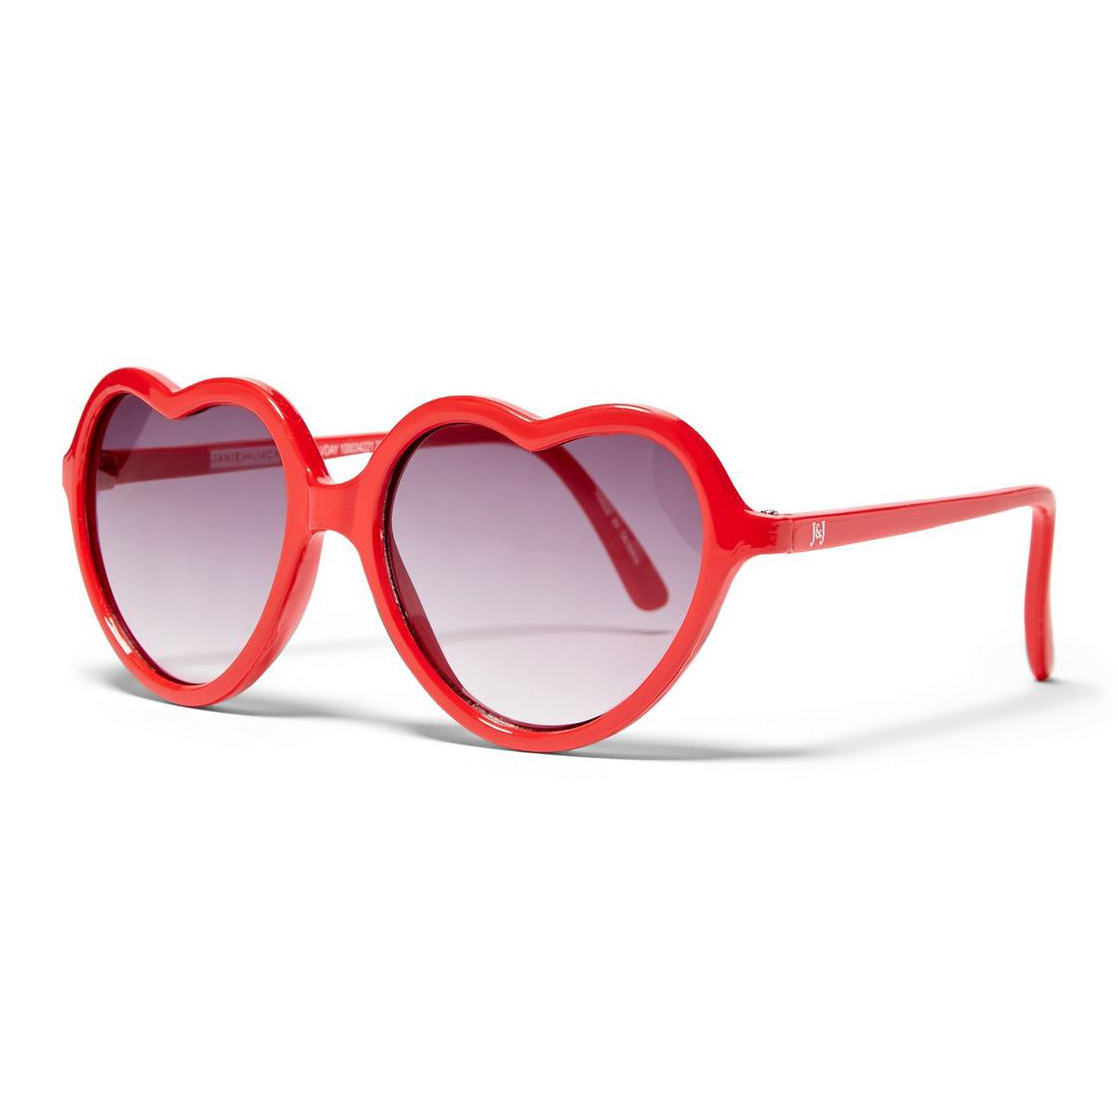 Valentine's Day gifts for kids - Heart Sunglasses